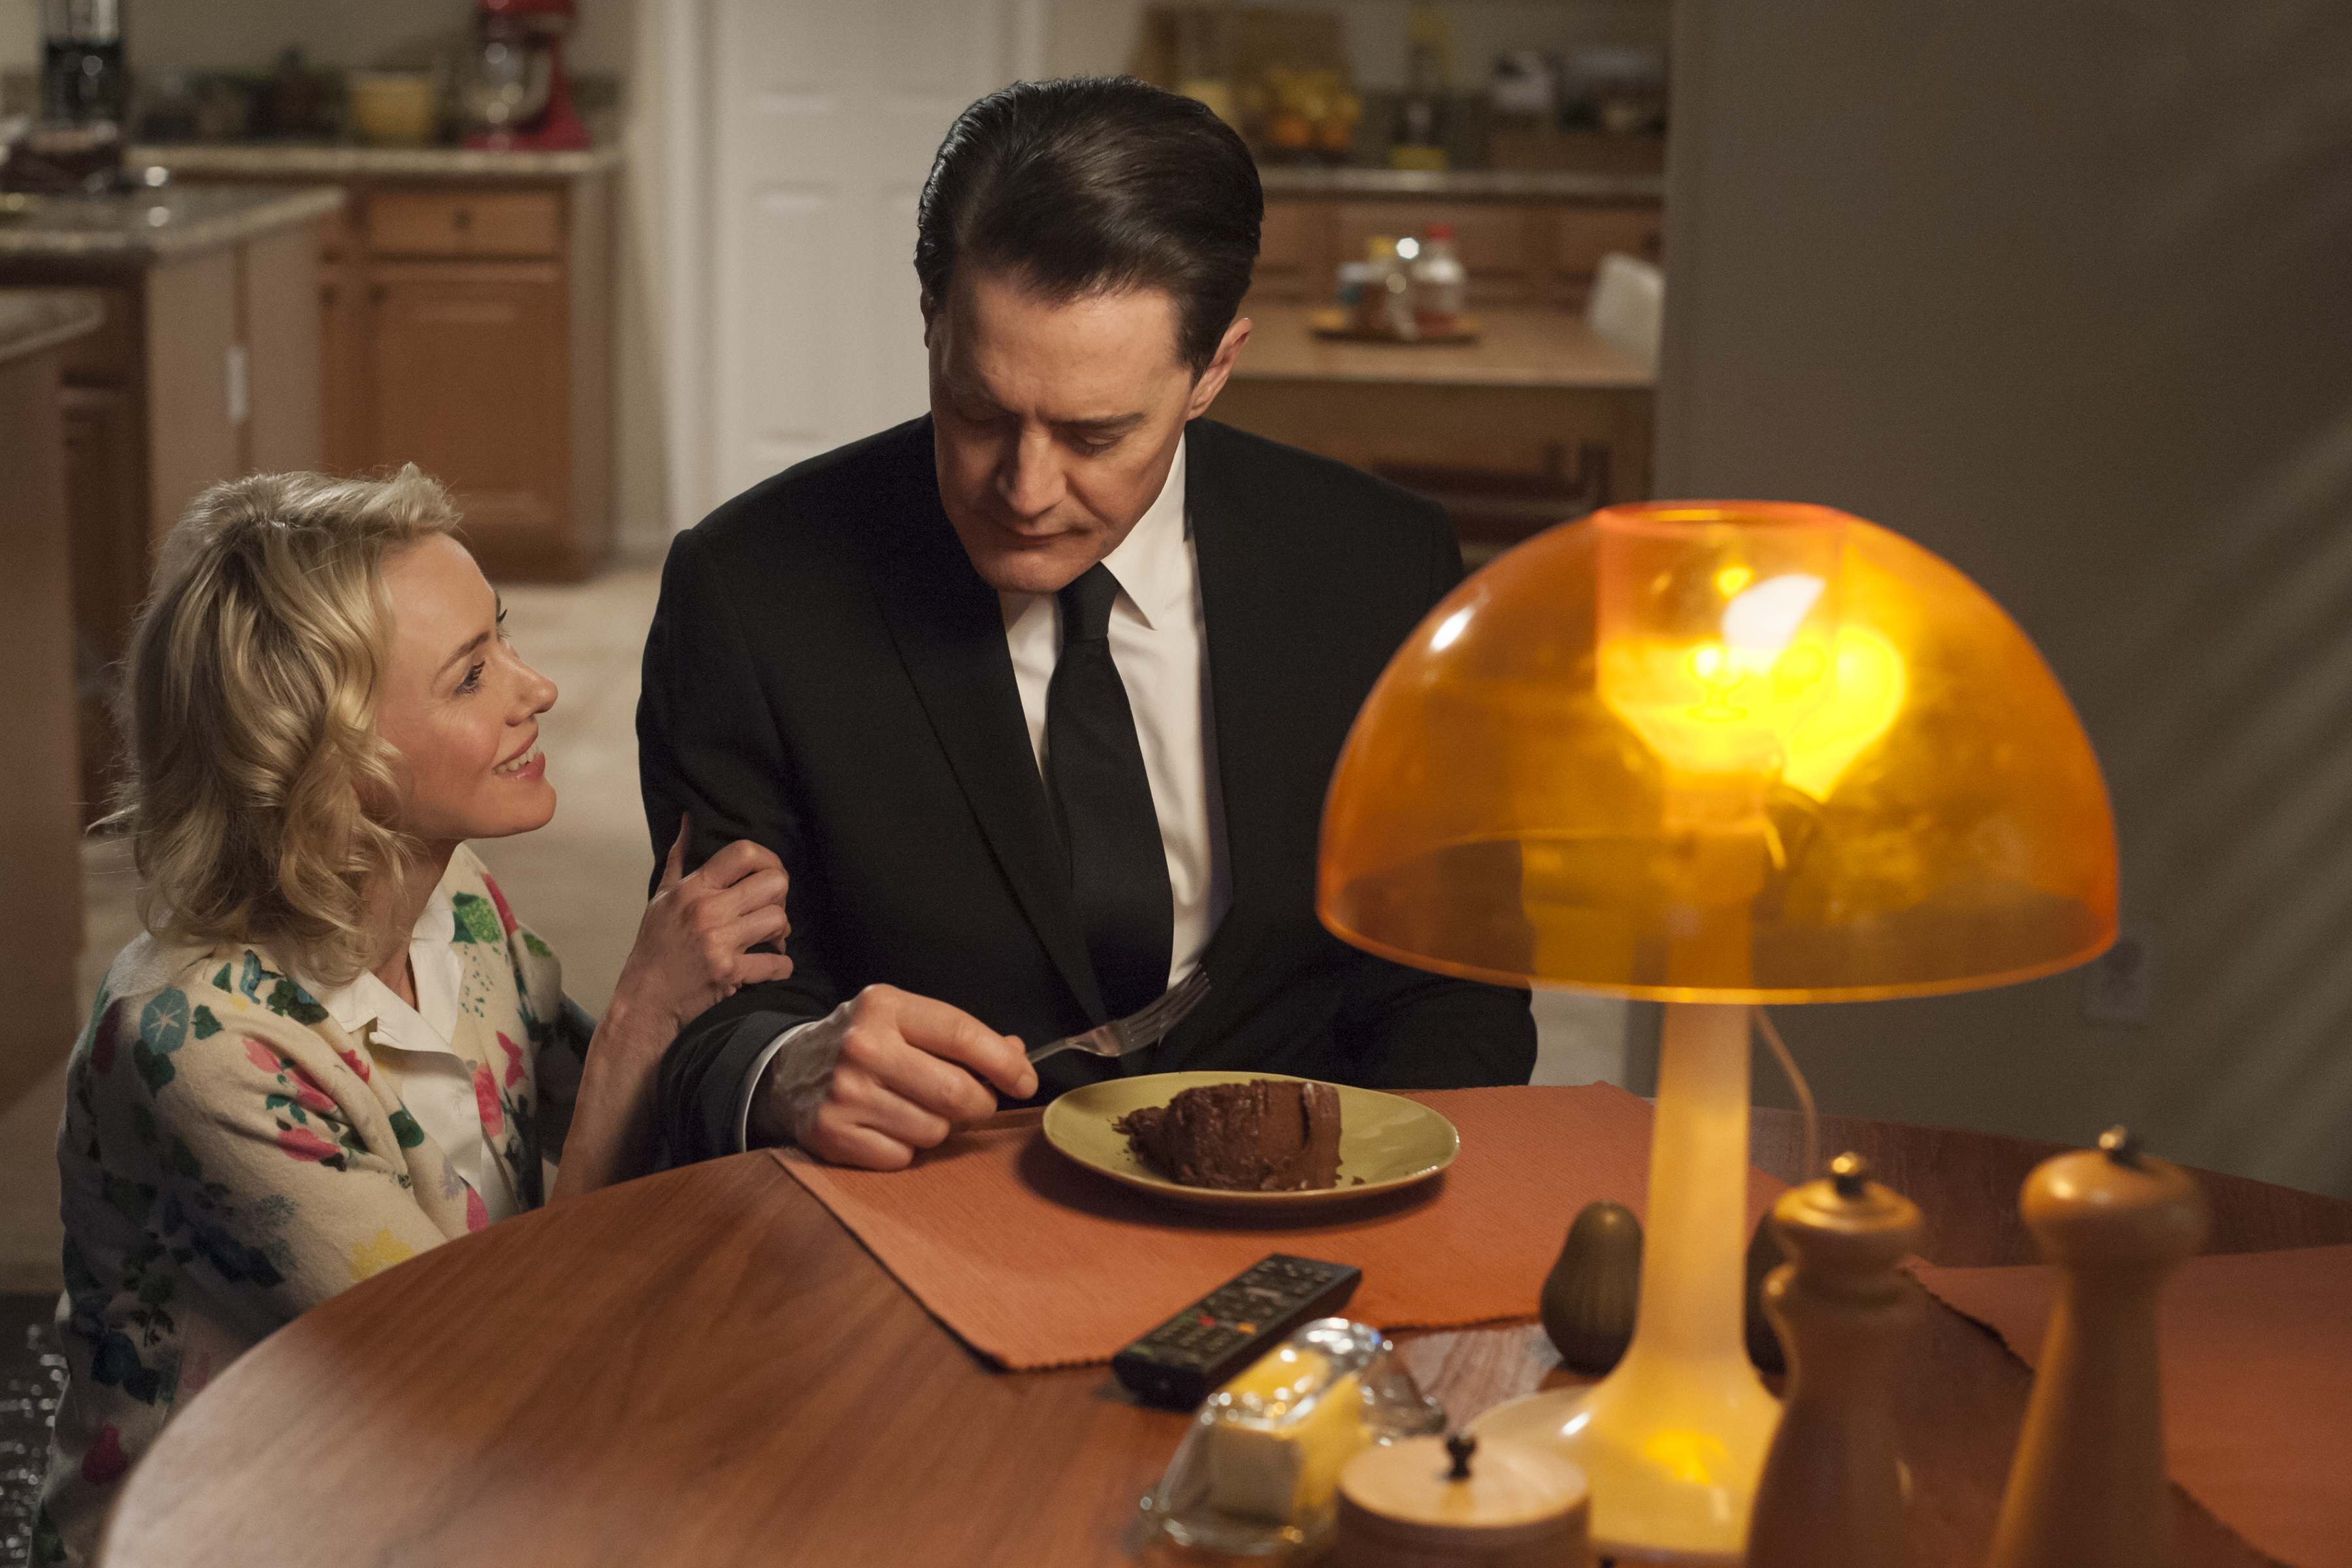 rr 12956 r Recapping Twin Peaks: The Return: Part 15